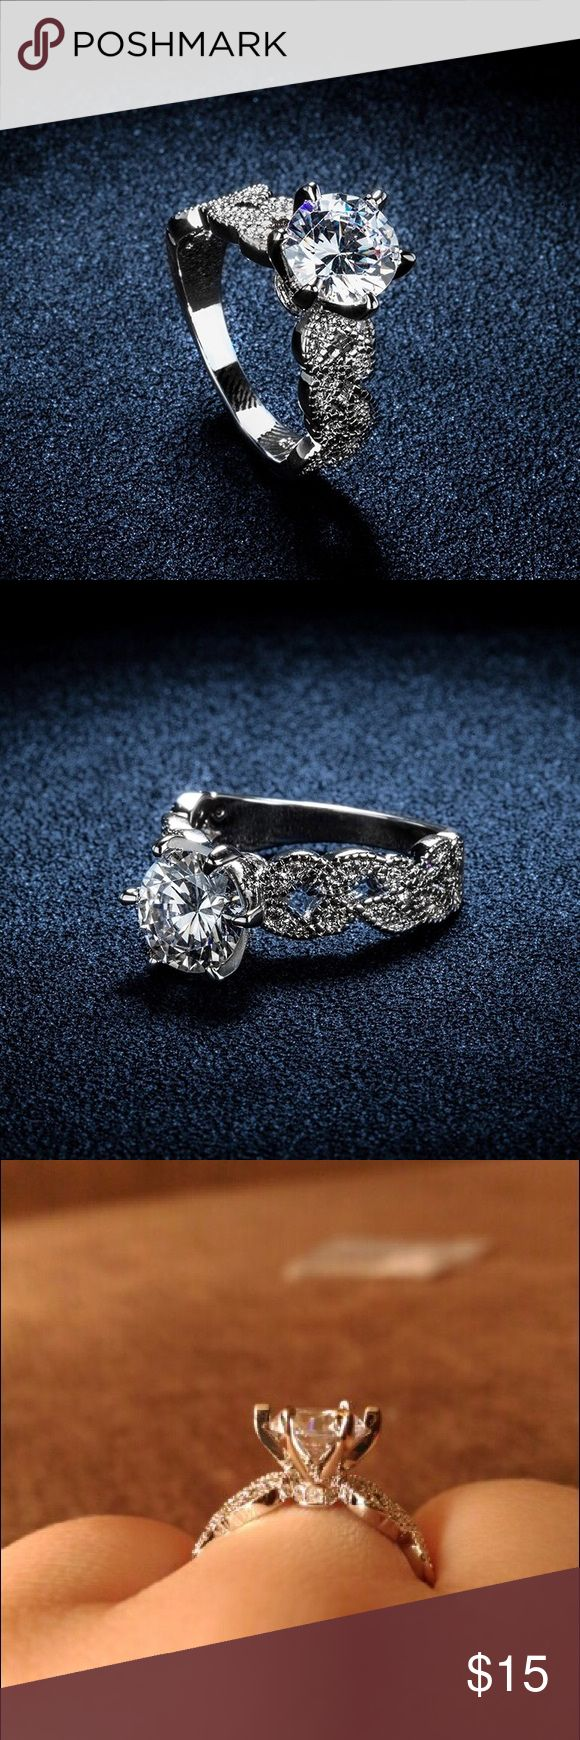 Engagement ring! 1.5 carat AAA CZ diamond jewelry Wedding engagement rings for women vintage White 585 Gold plated crystal fashionable ring!  • with a small box • price is firm  Happy shopping y'all! Jewelry Rings